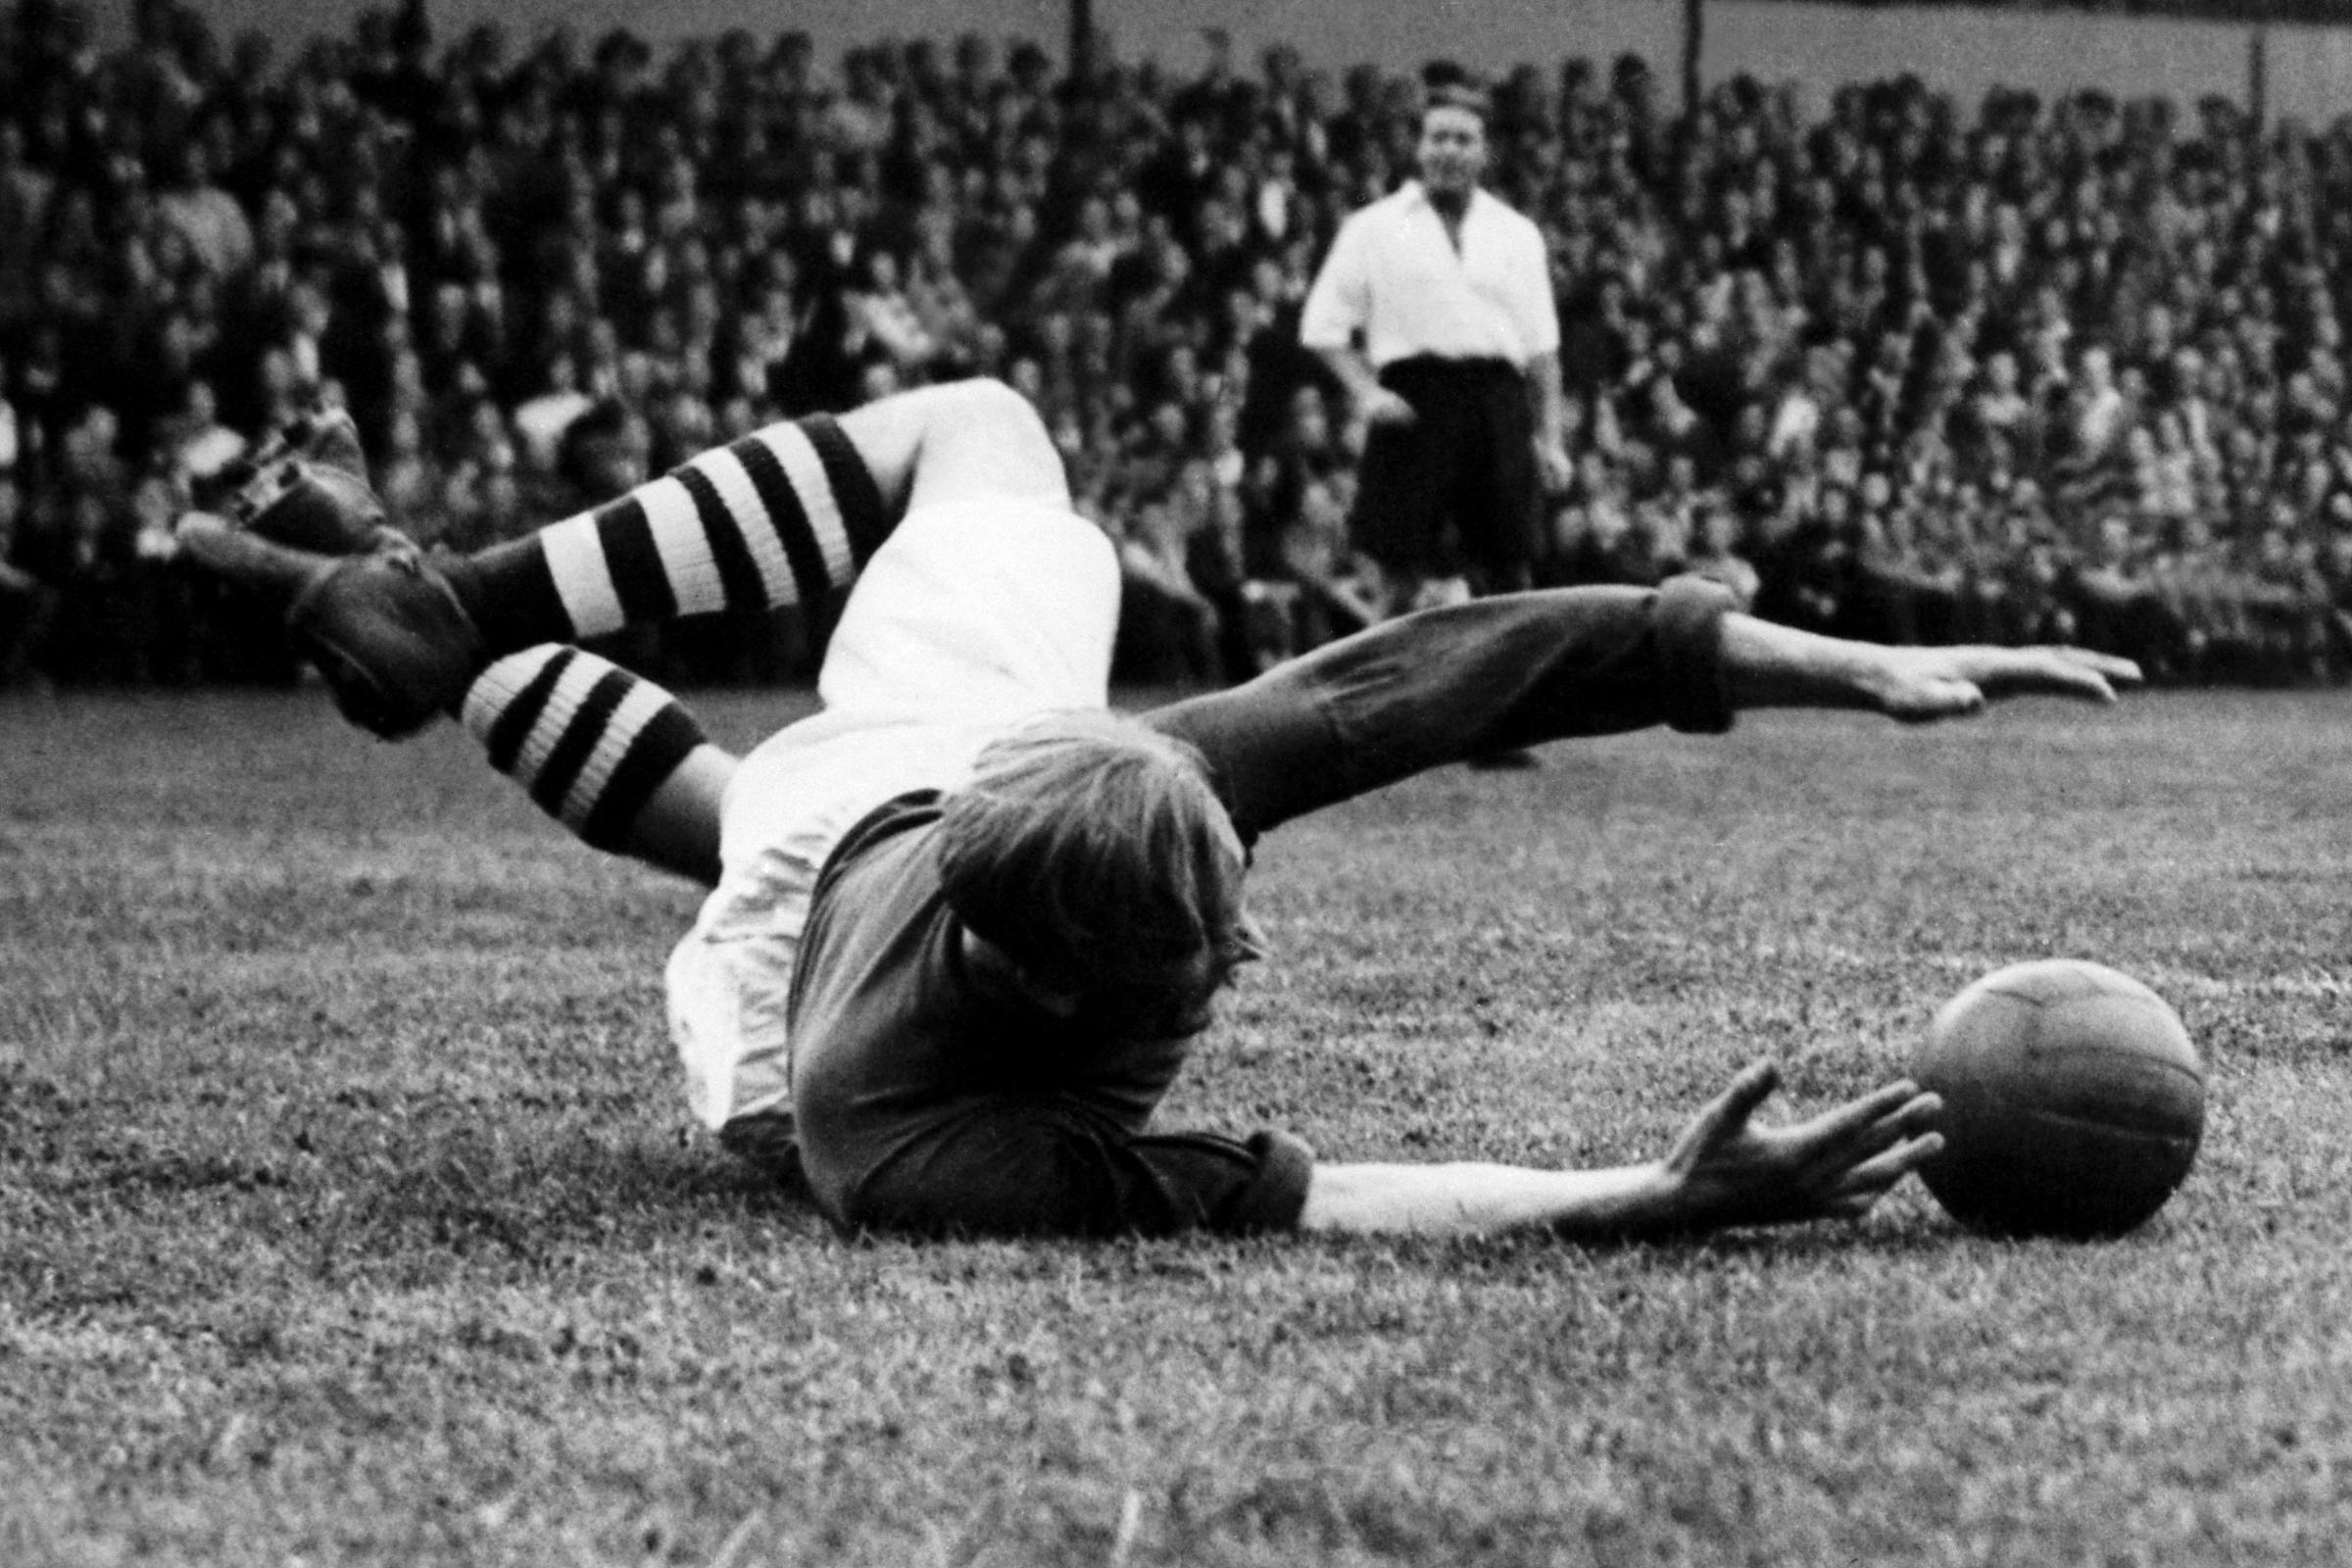 The Trautmann film – gentle, poignant and authentic